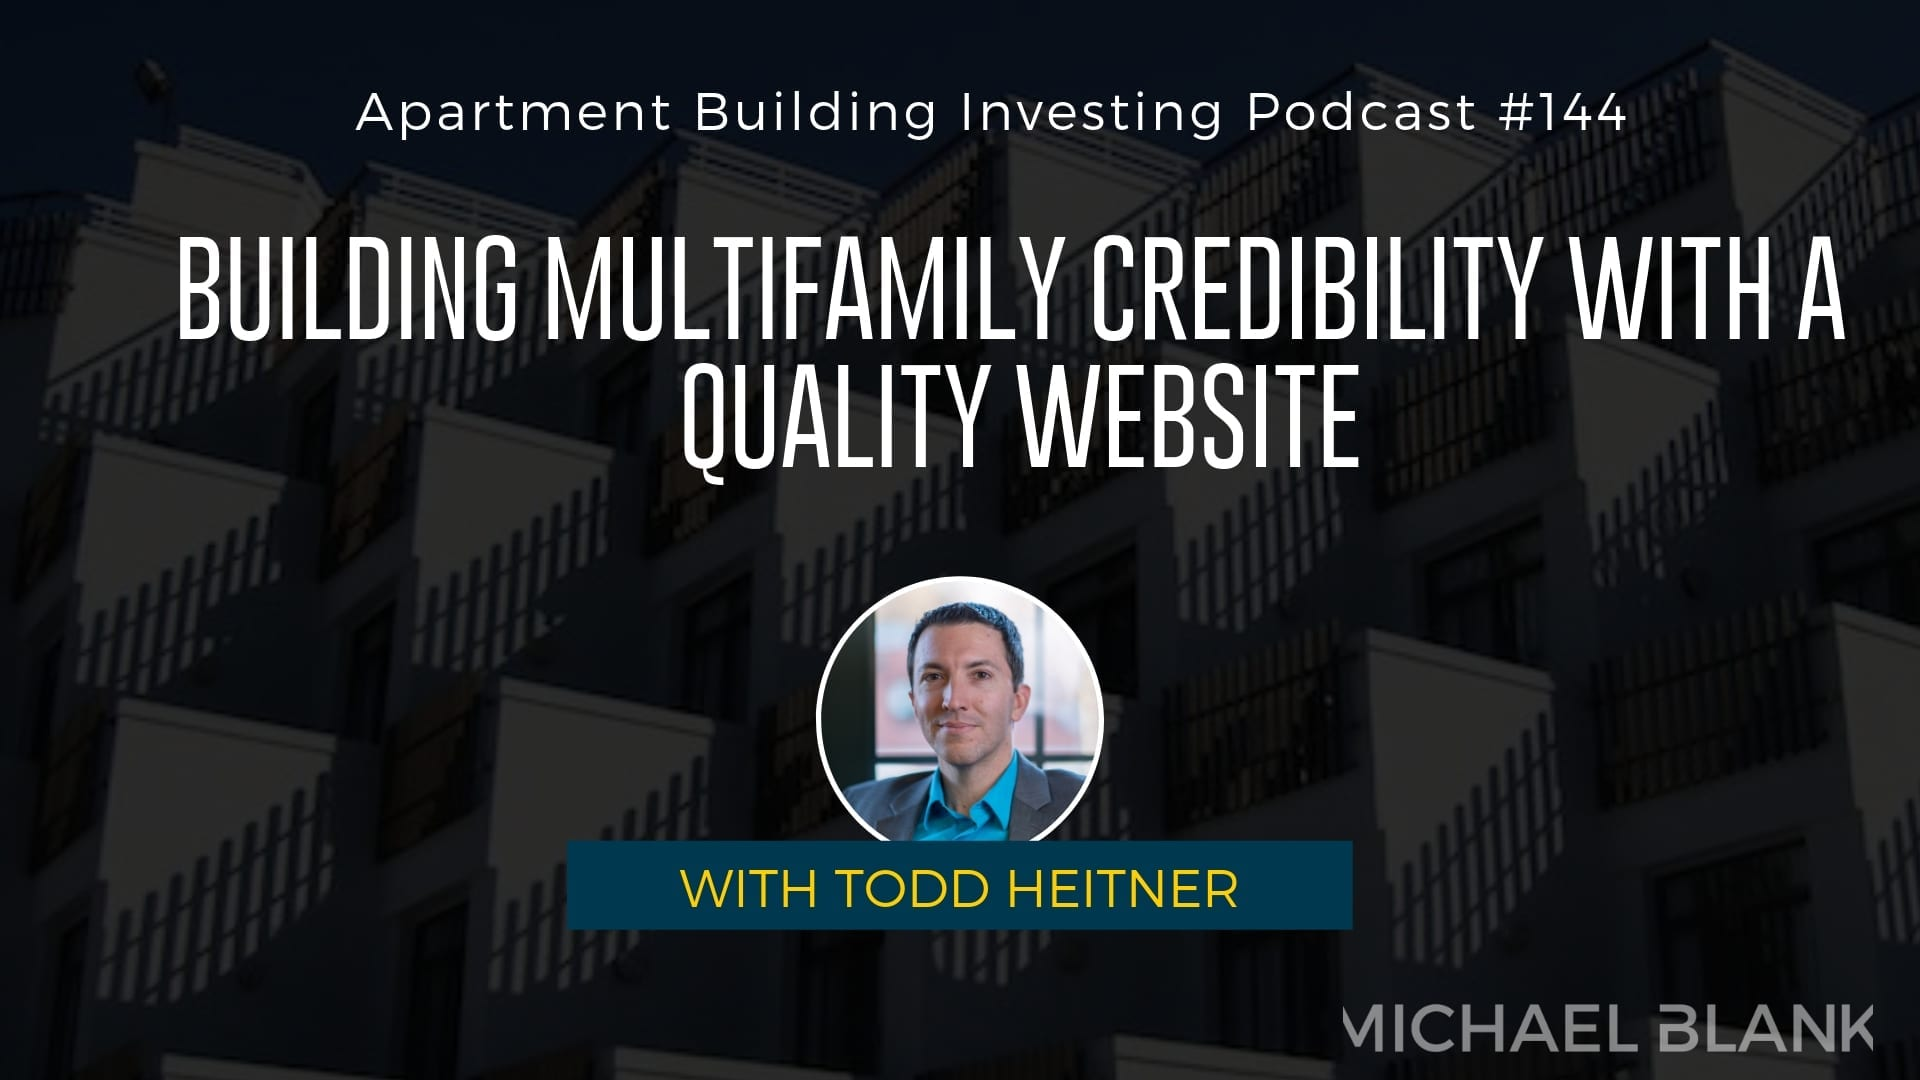 MB 144: Building Multifamily Credibility with a Quality Website – With Todd Heitner